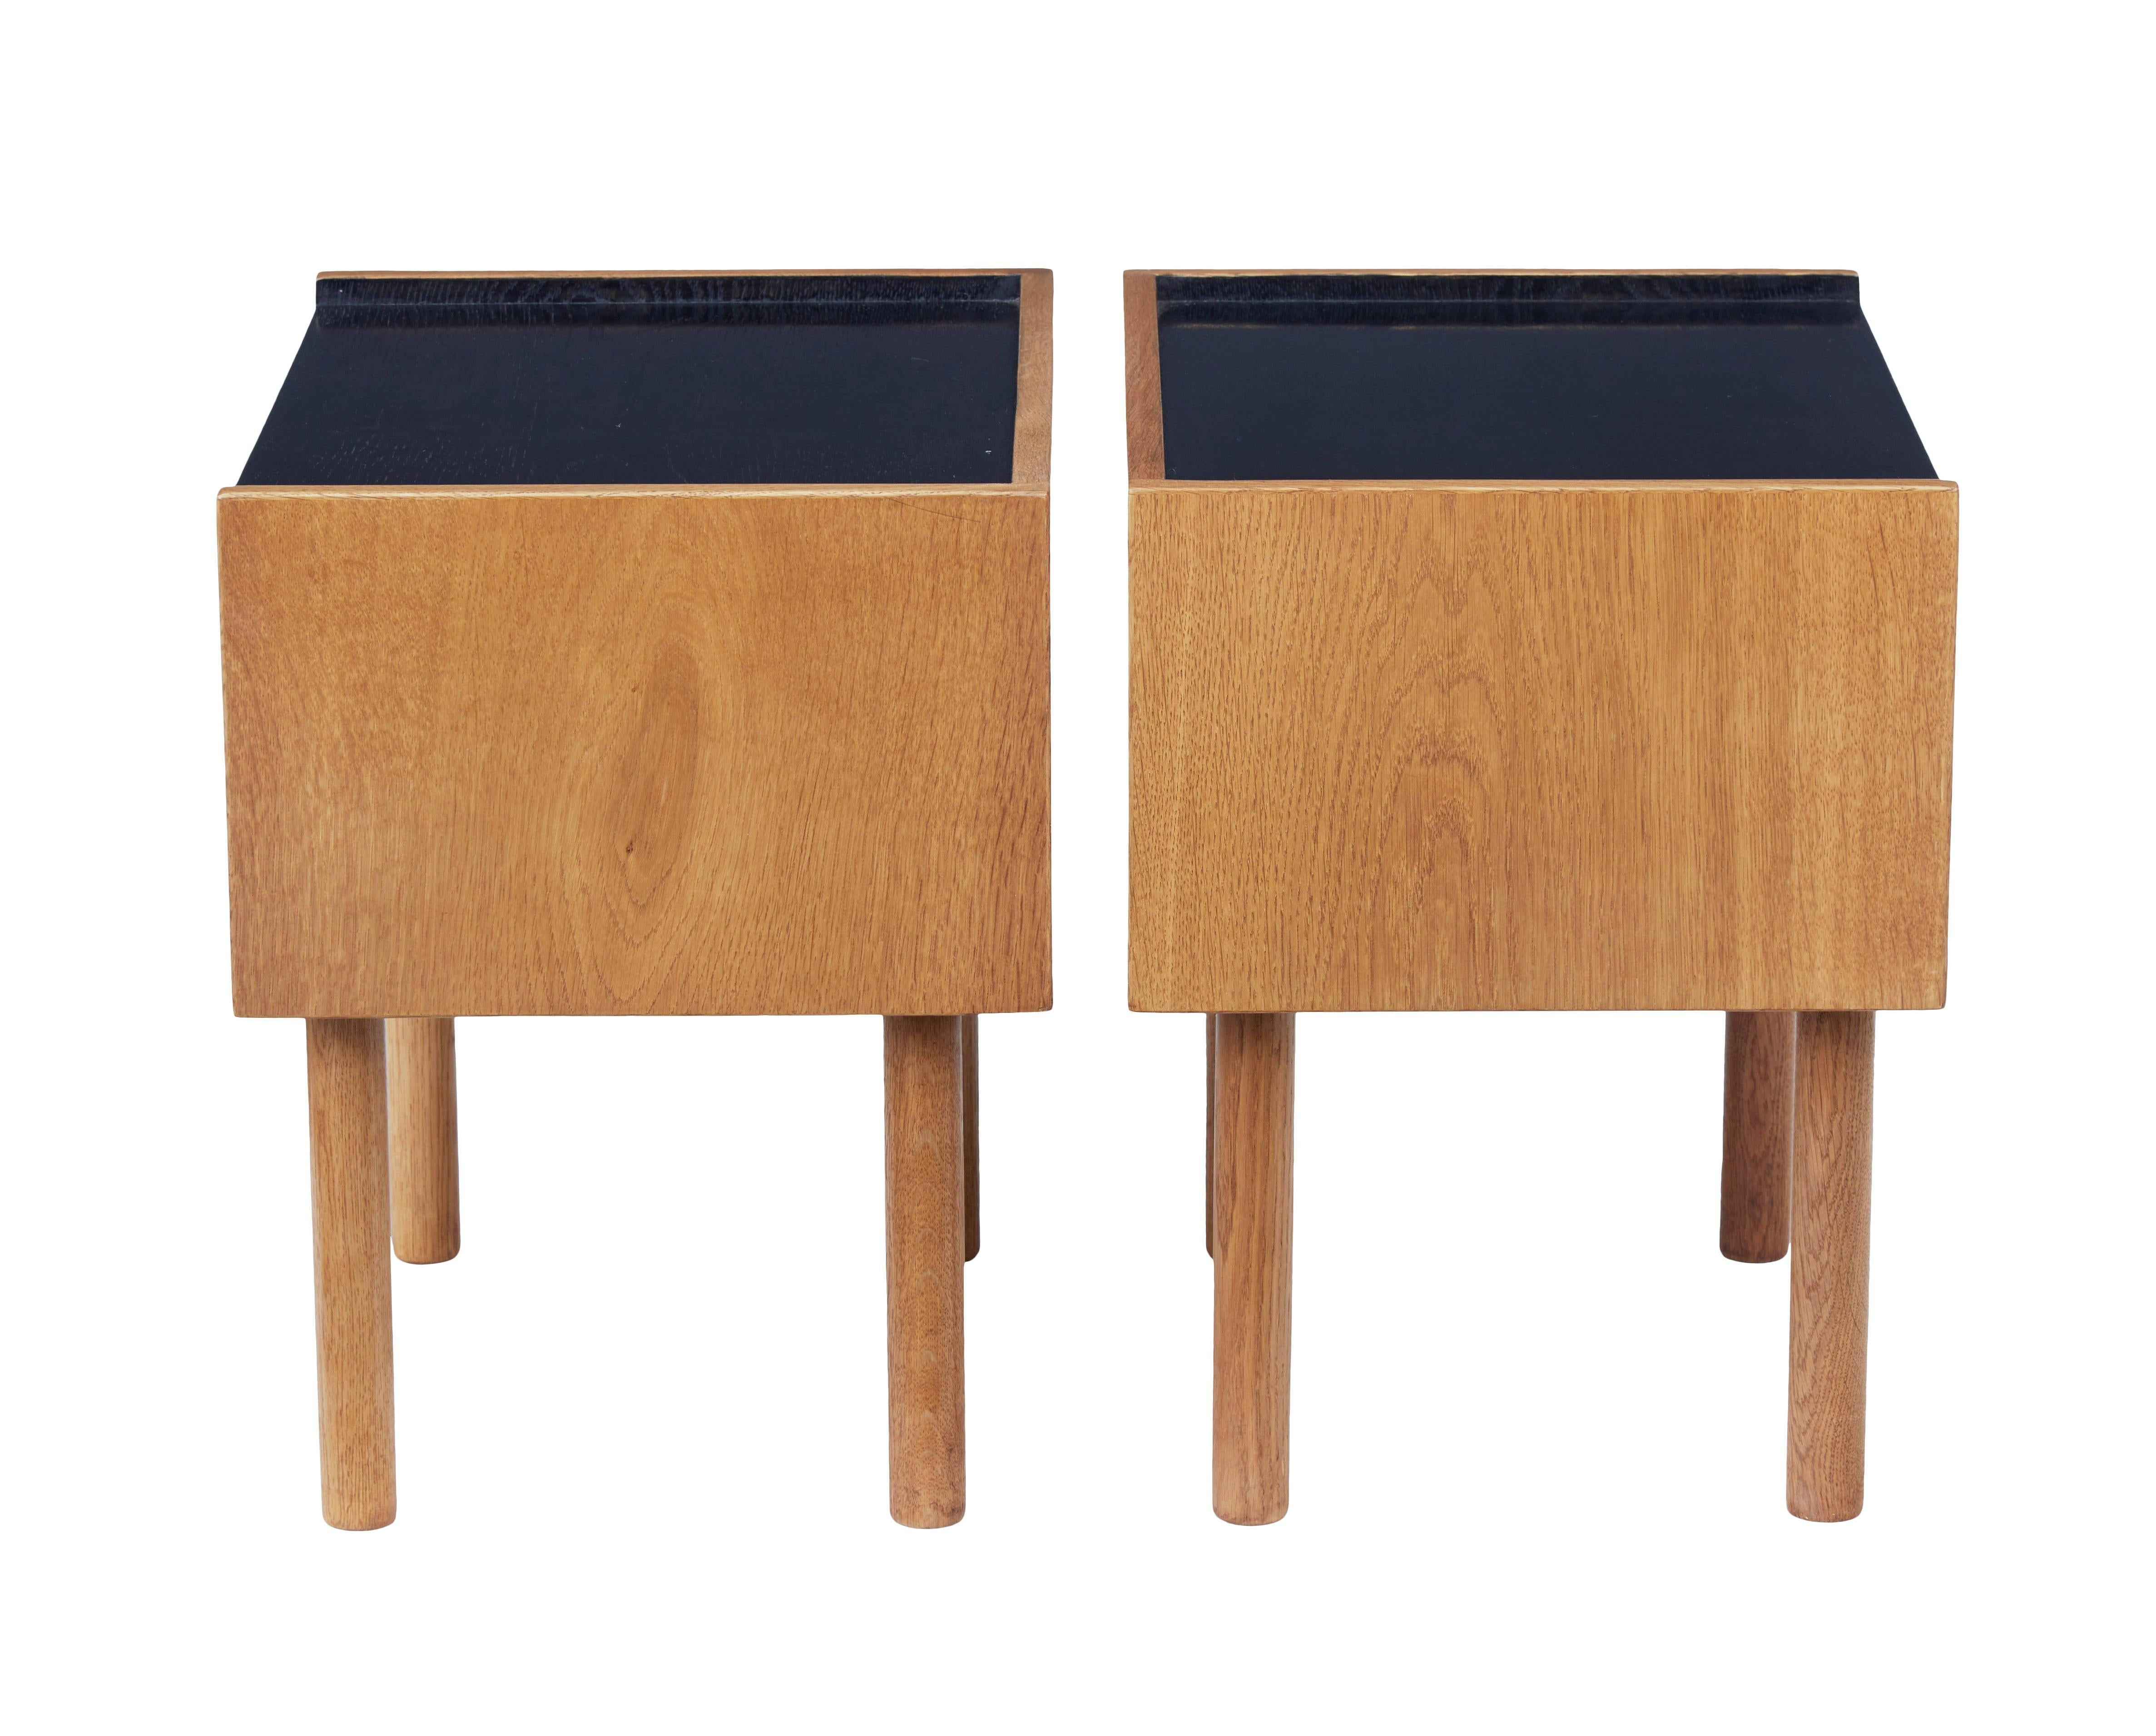 Antiques Pair Of Oak Bedside Tables Designed By Hans J Wegner For Ry Mobelfabrik